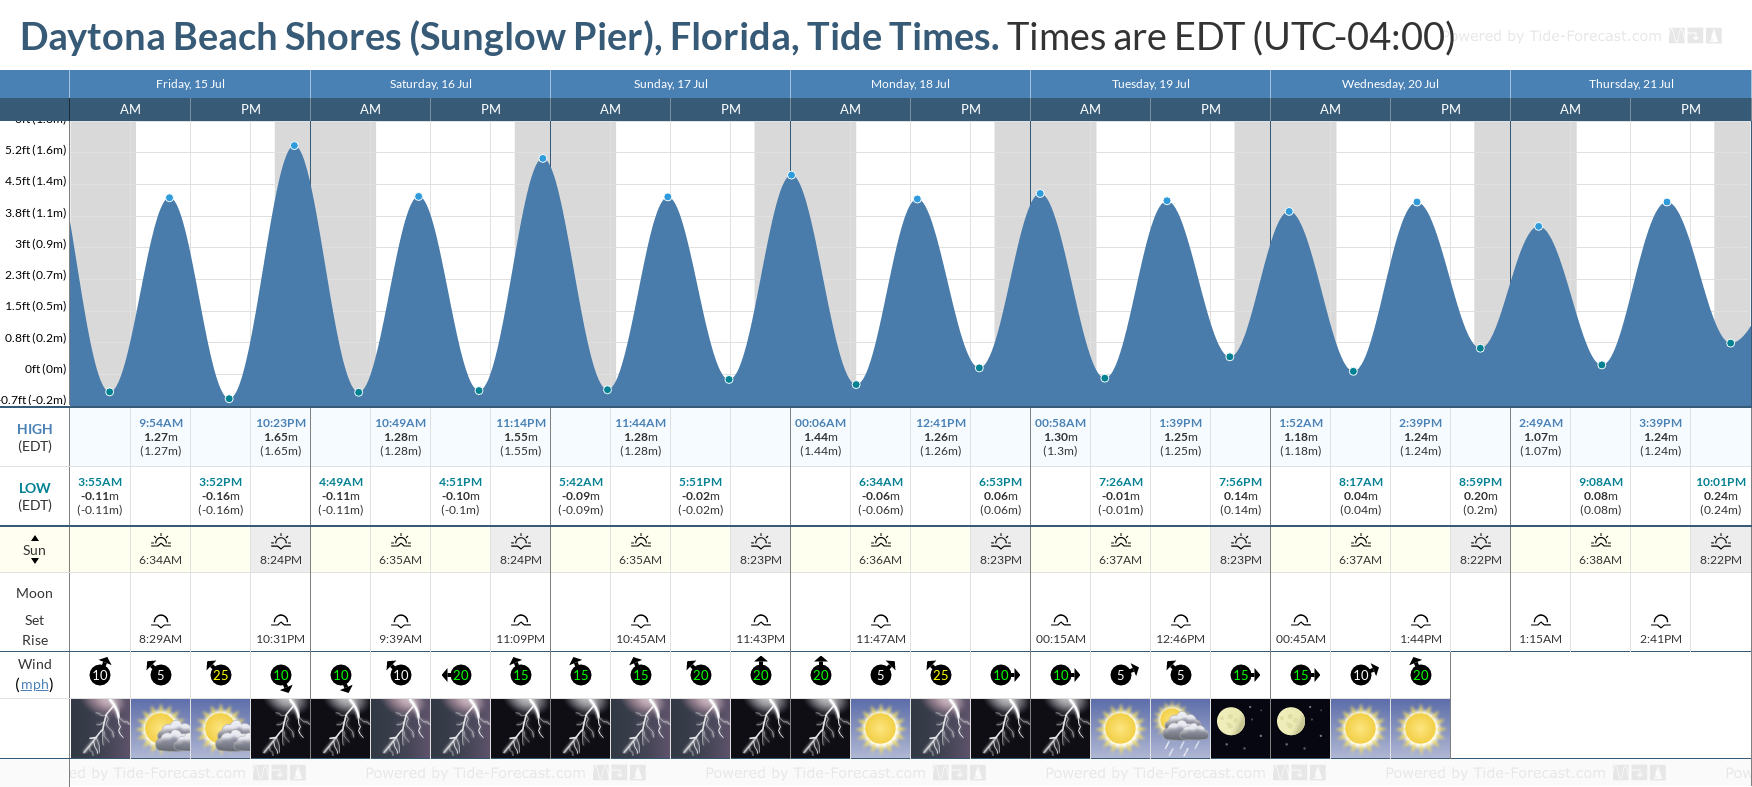 Daytona Beach Shores (Sunglow Pier), Florida Tide Chart including high and low tide tide times for the next 7 days